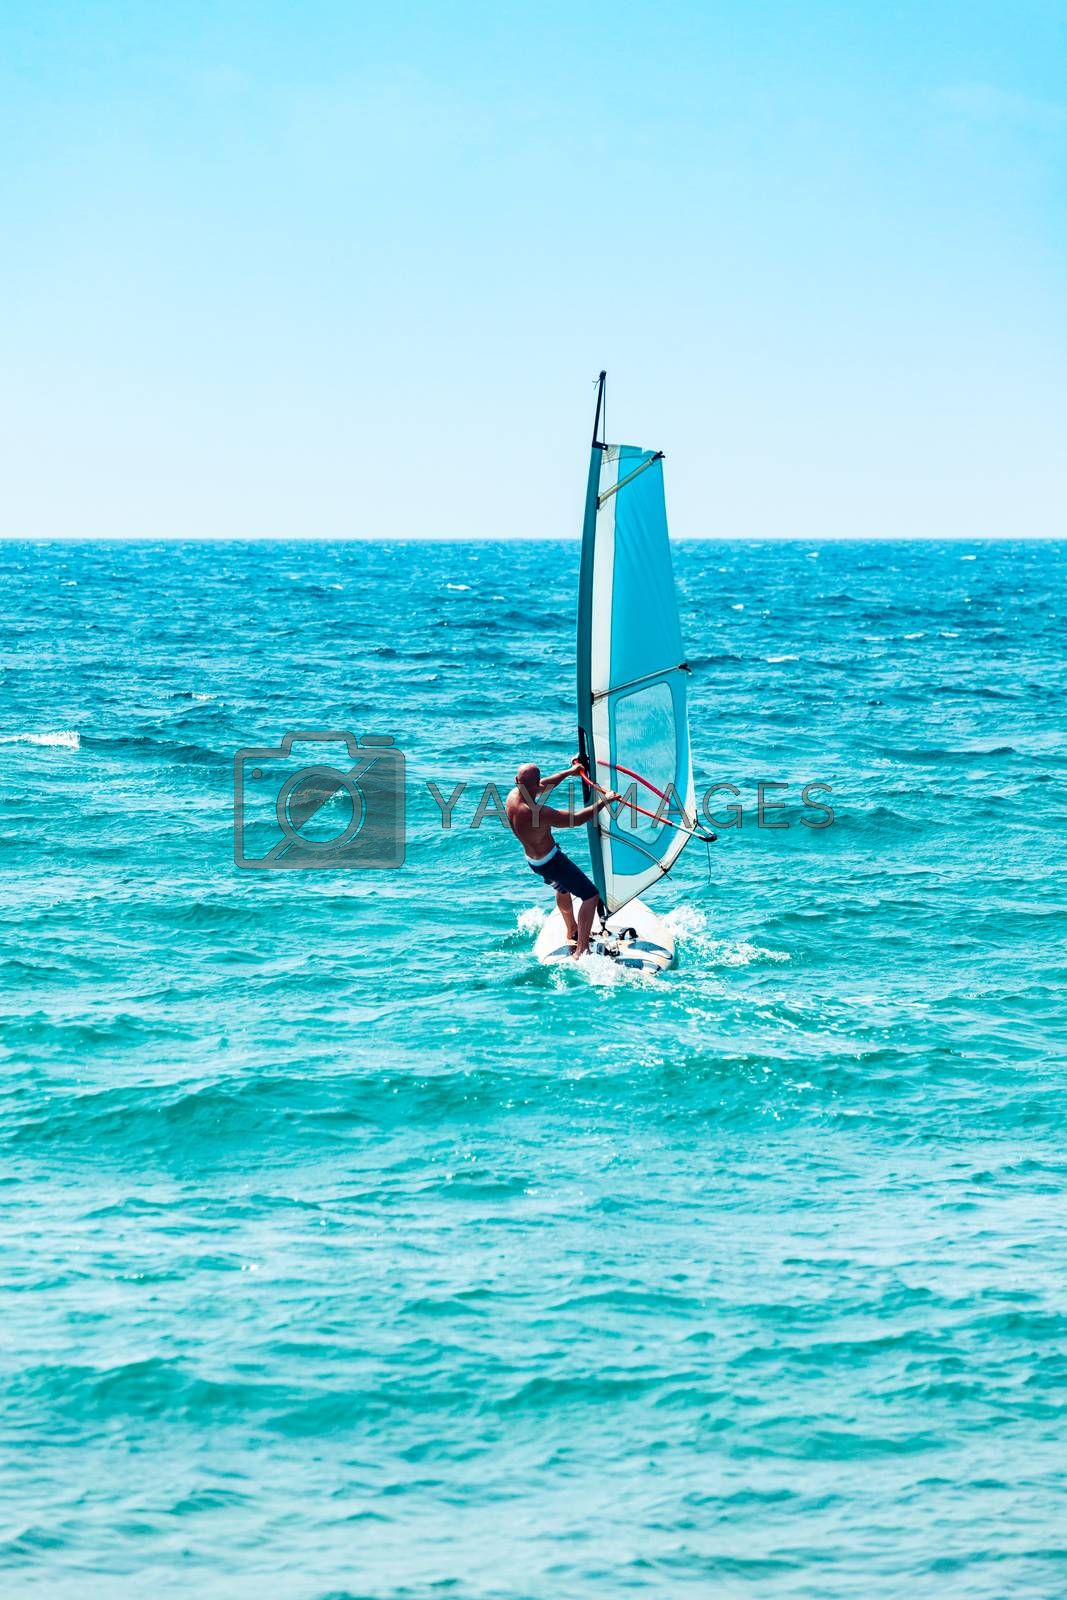 Windsurfer in action, sportive man riding windsurf in the sea, extreme water sport, active summer vacation, happy healthy lifestyle